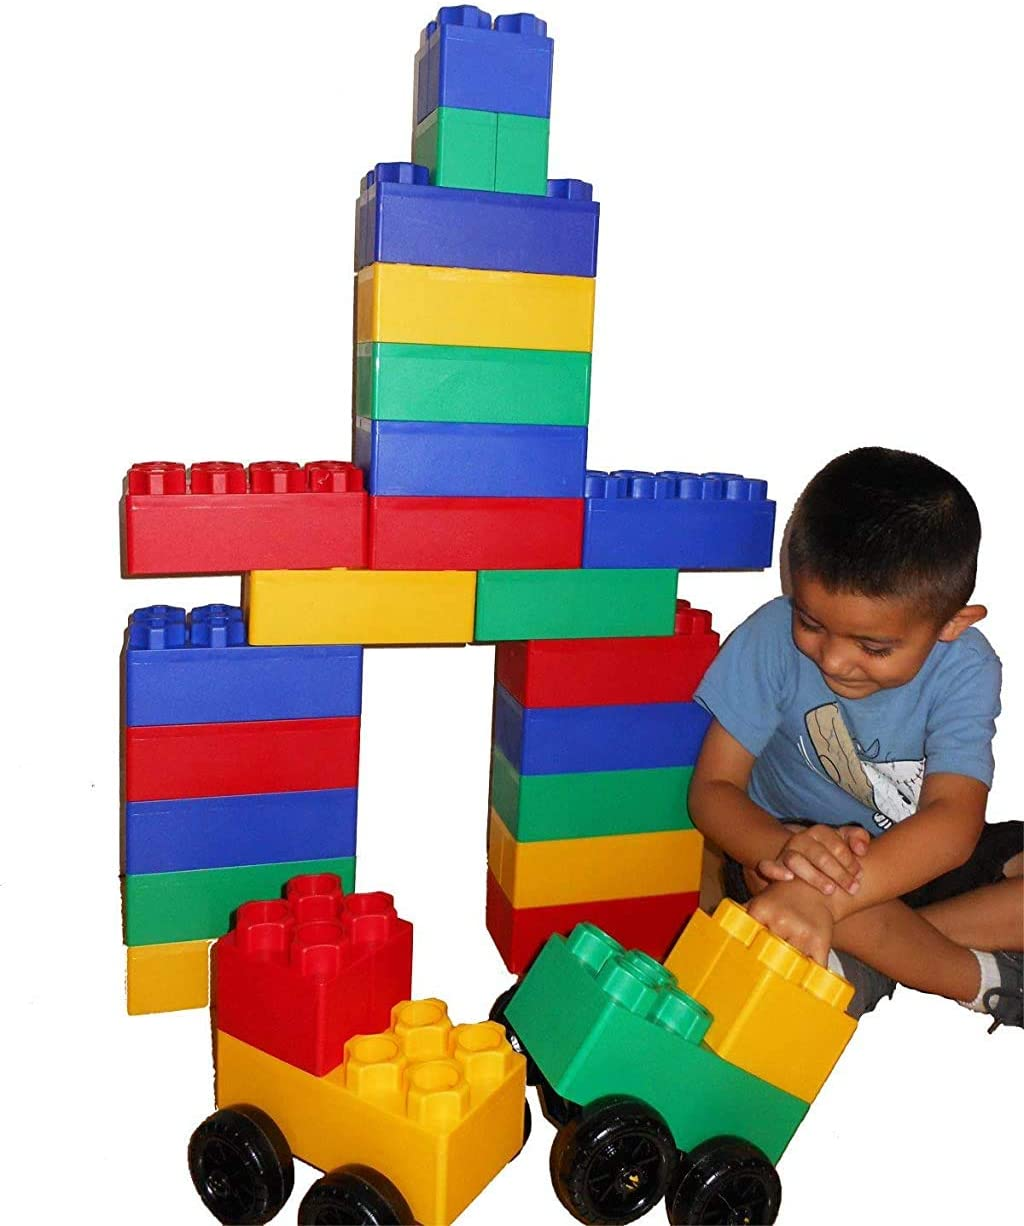 Big City Playset with Wheels